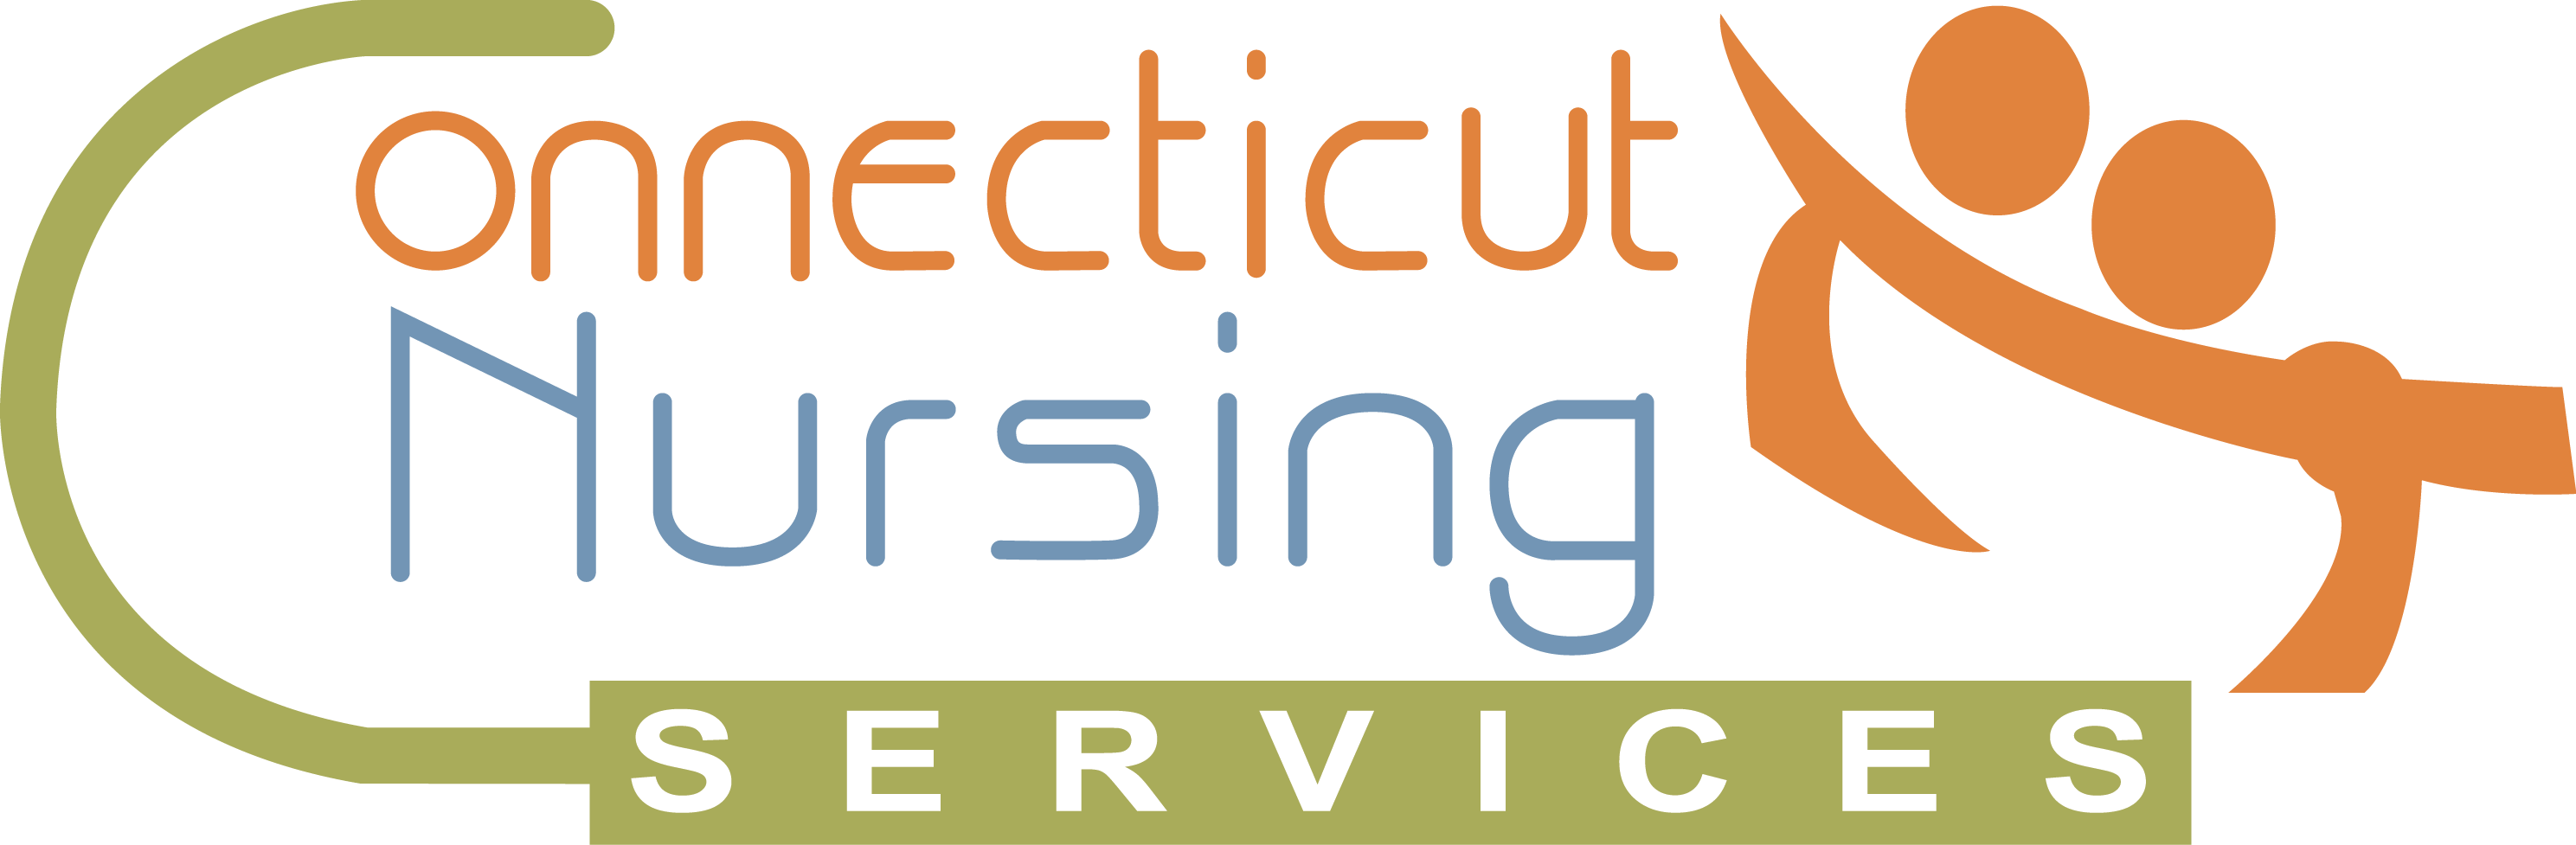 Connecticut Nursing Services Logo